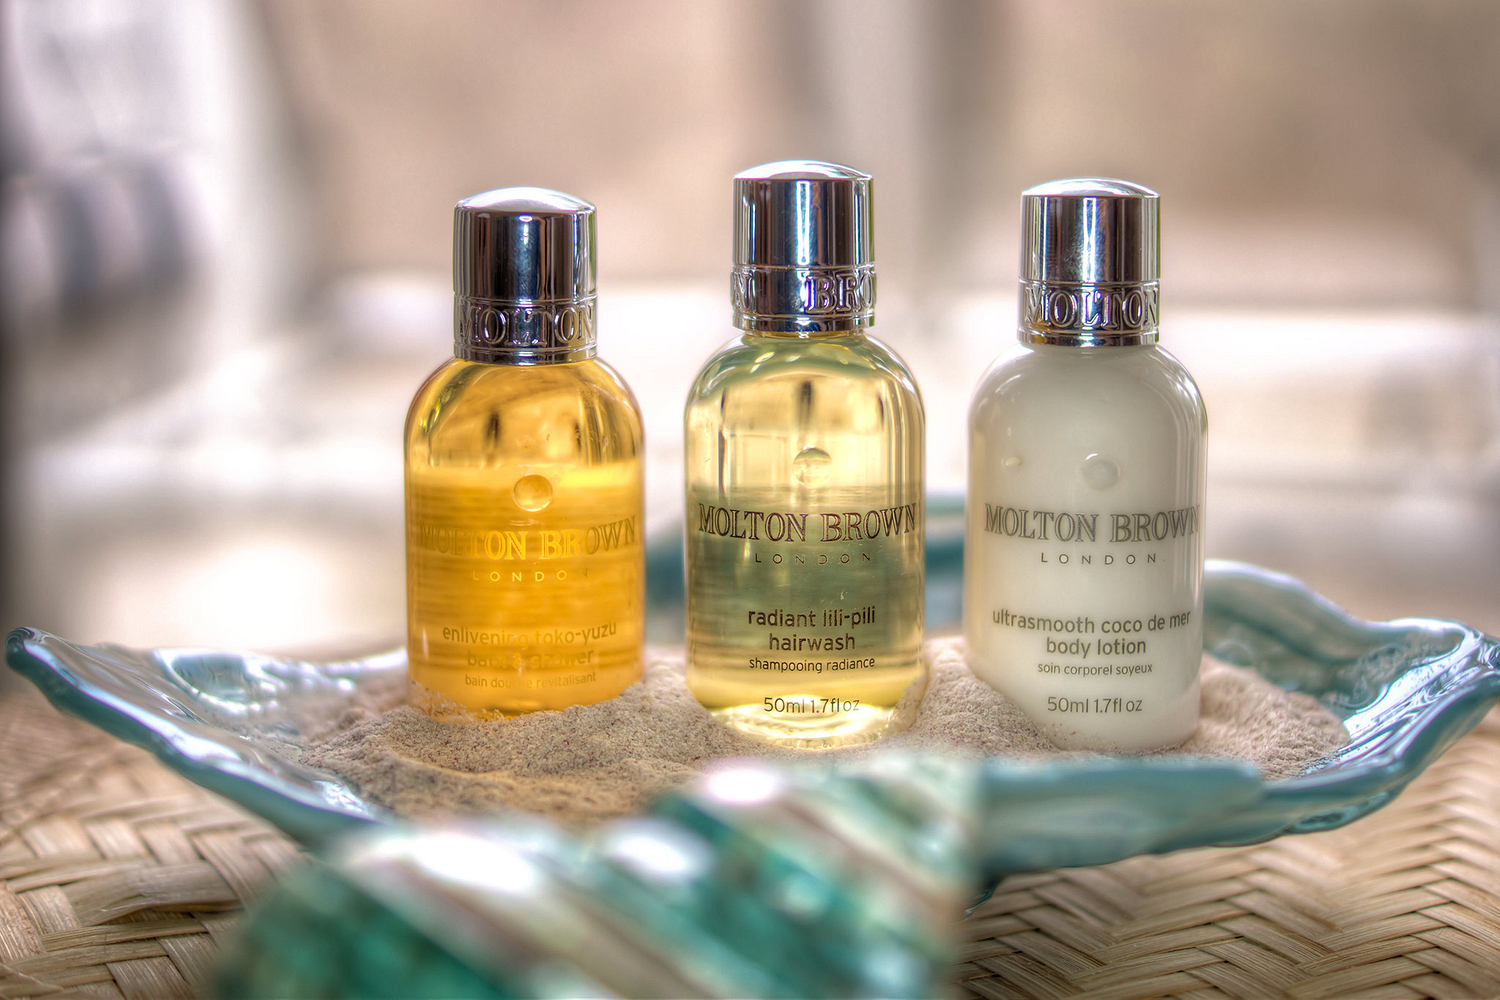 Molton Brown Bath Products